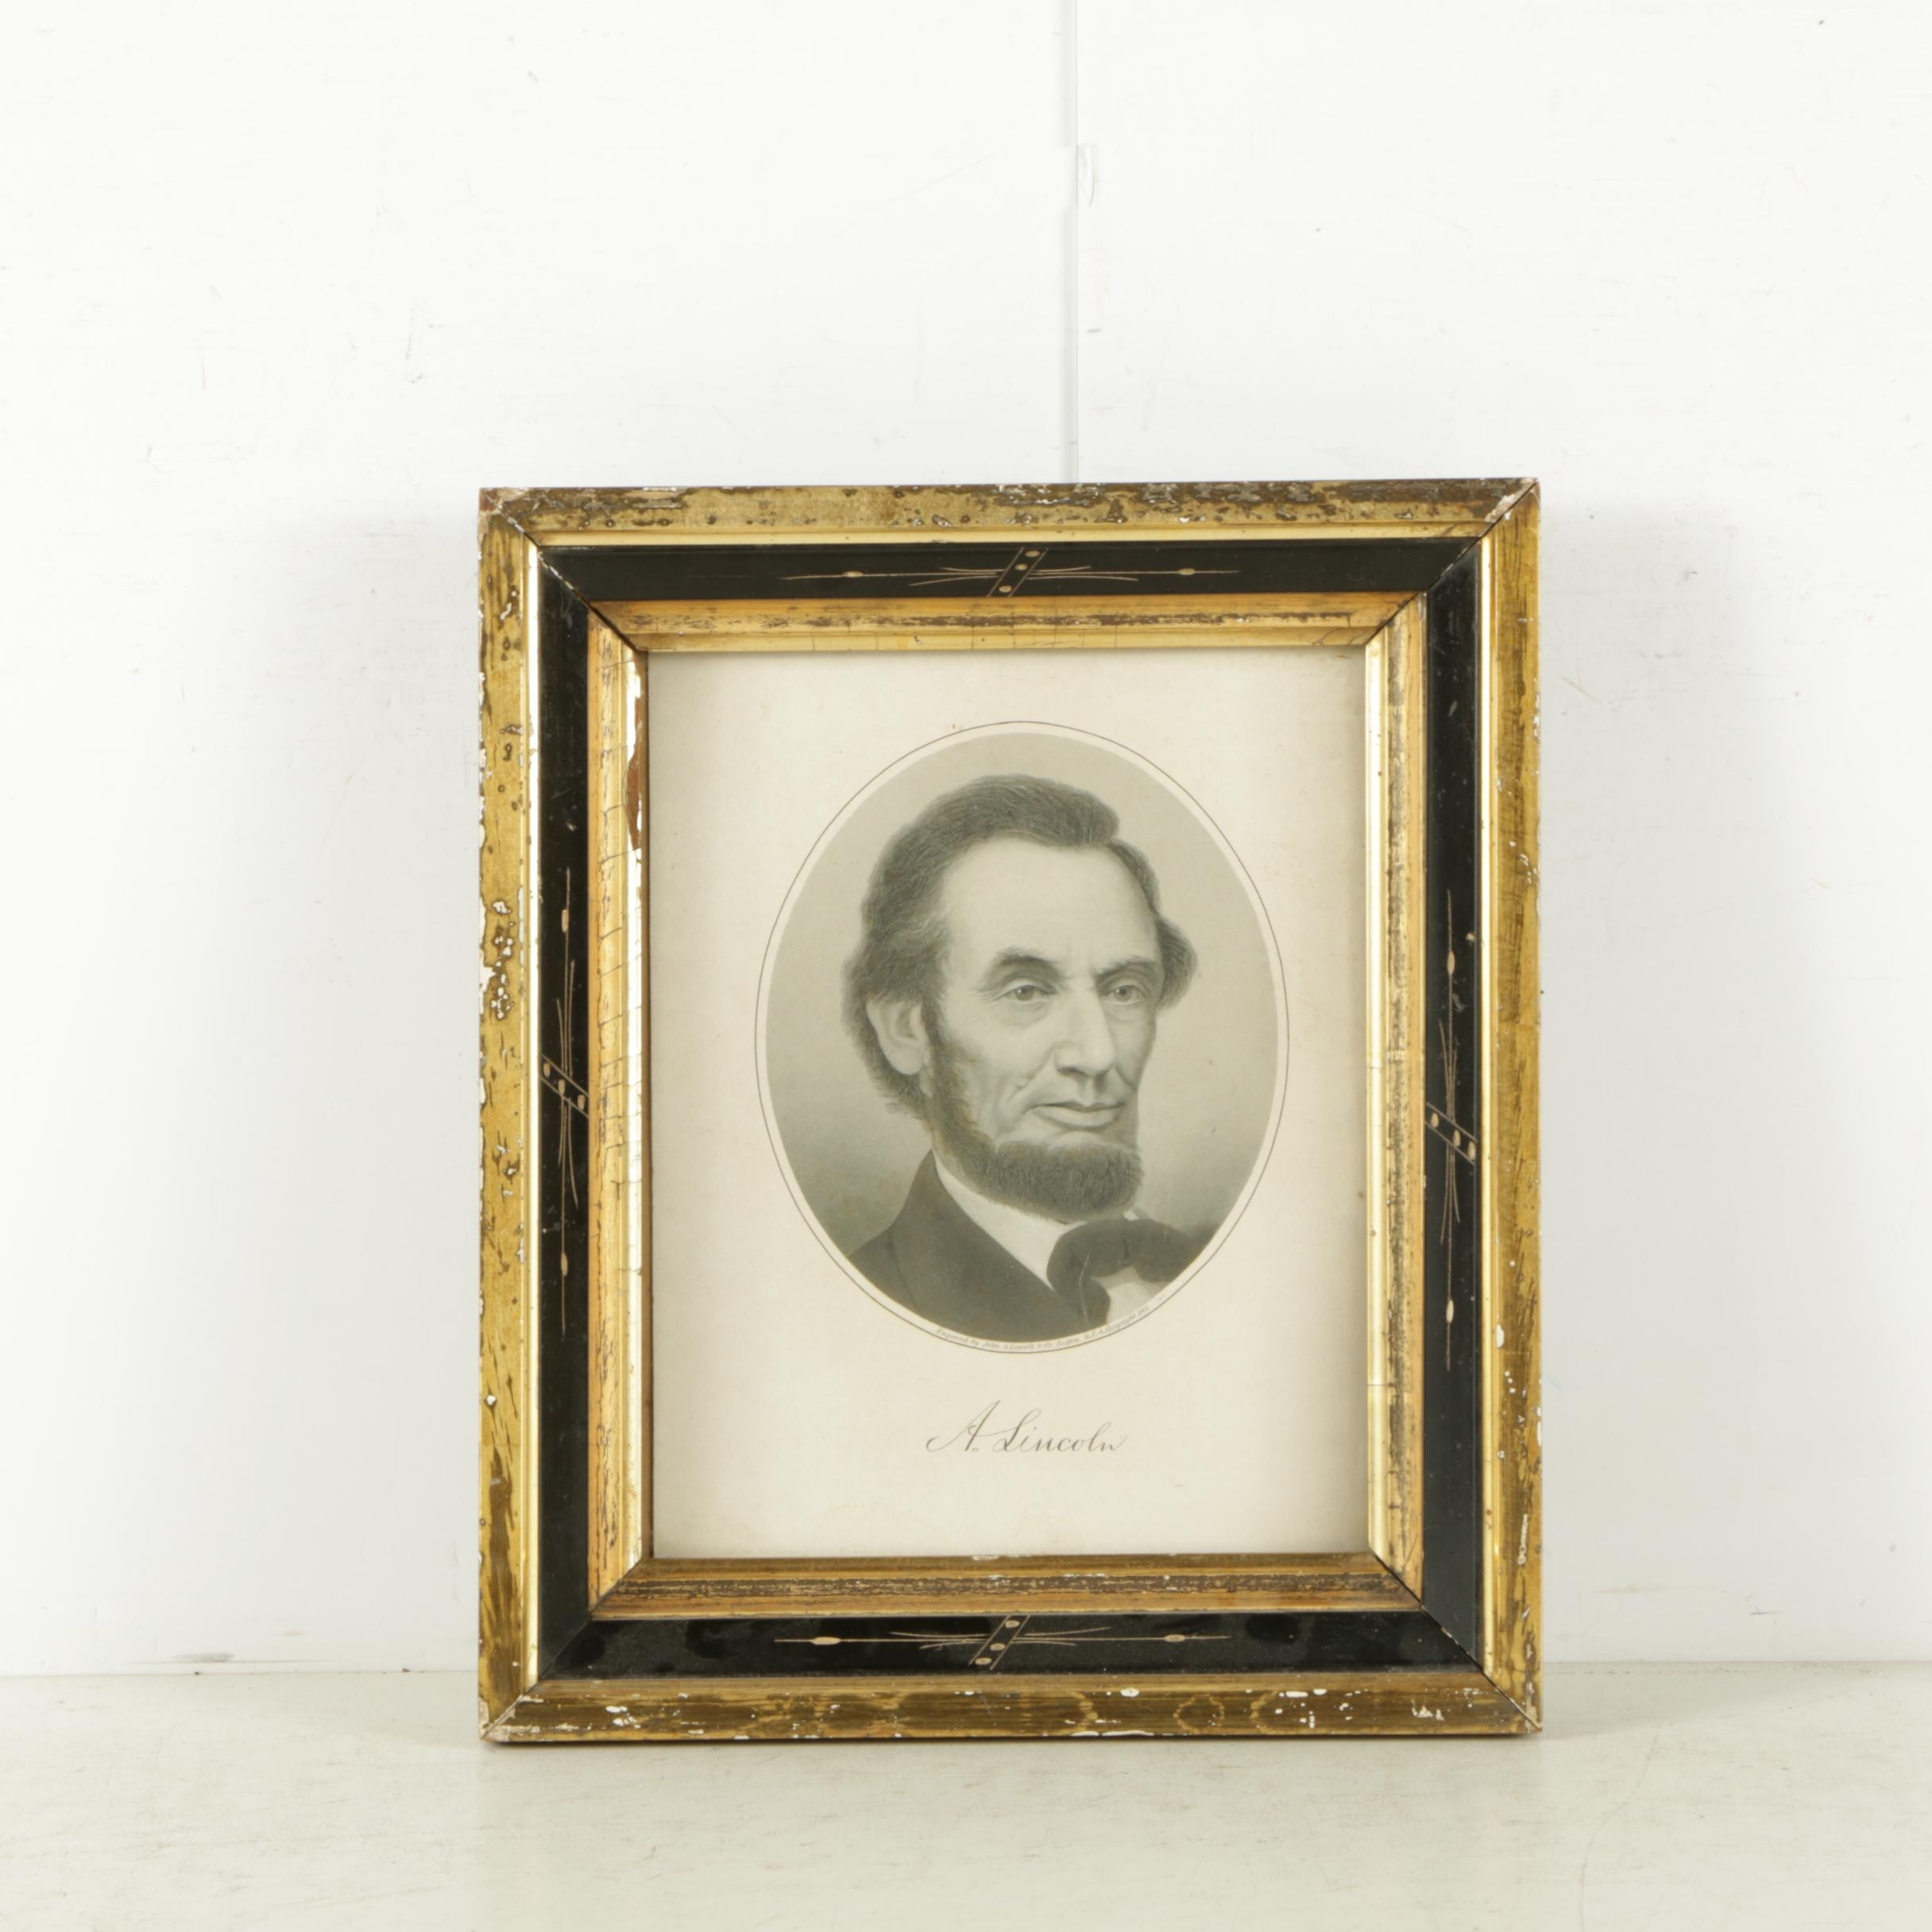 1901 Engraving on Paper of Abraham Lincoln After John A. Lowell